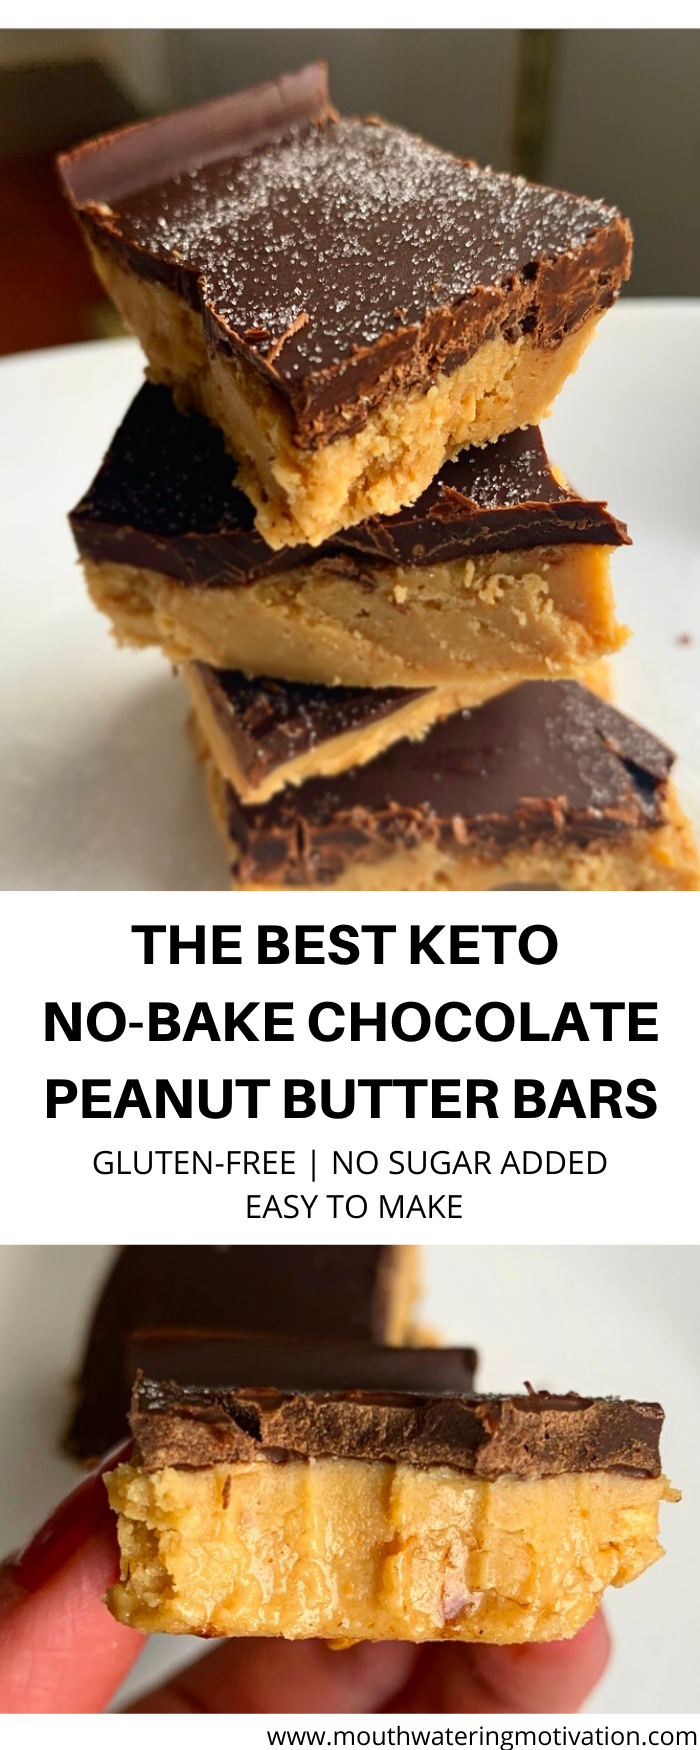 Keto chocolate peanut butter